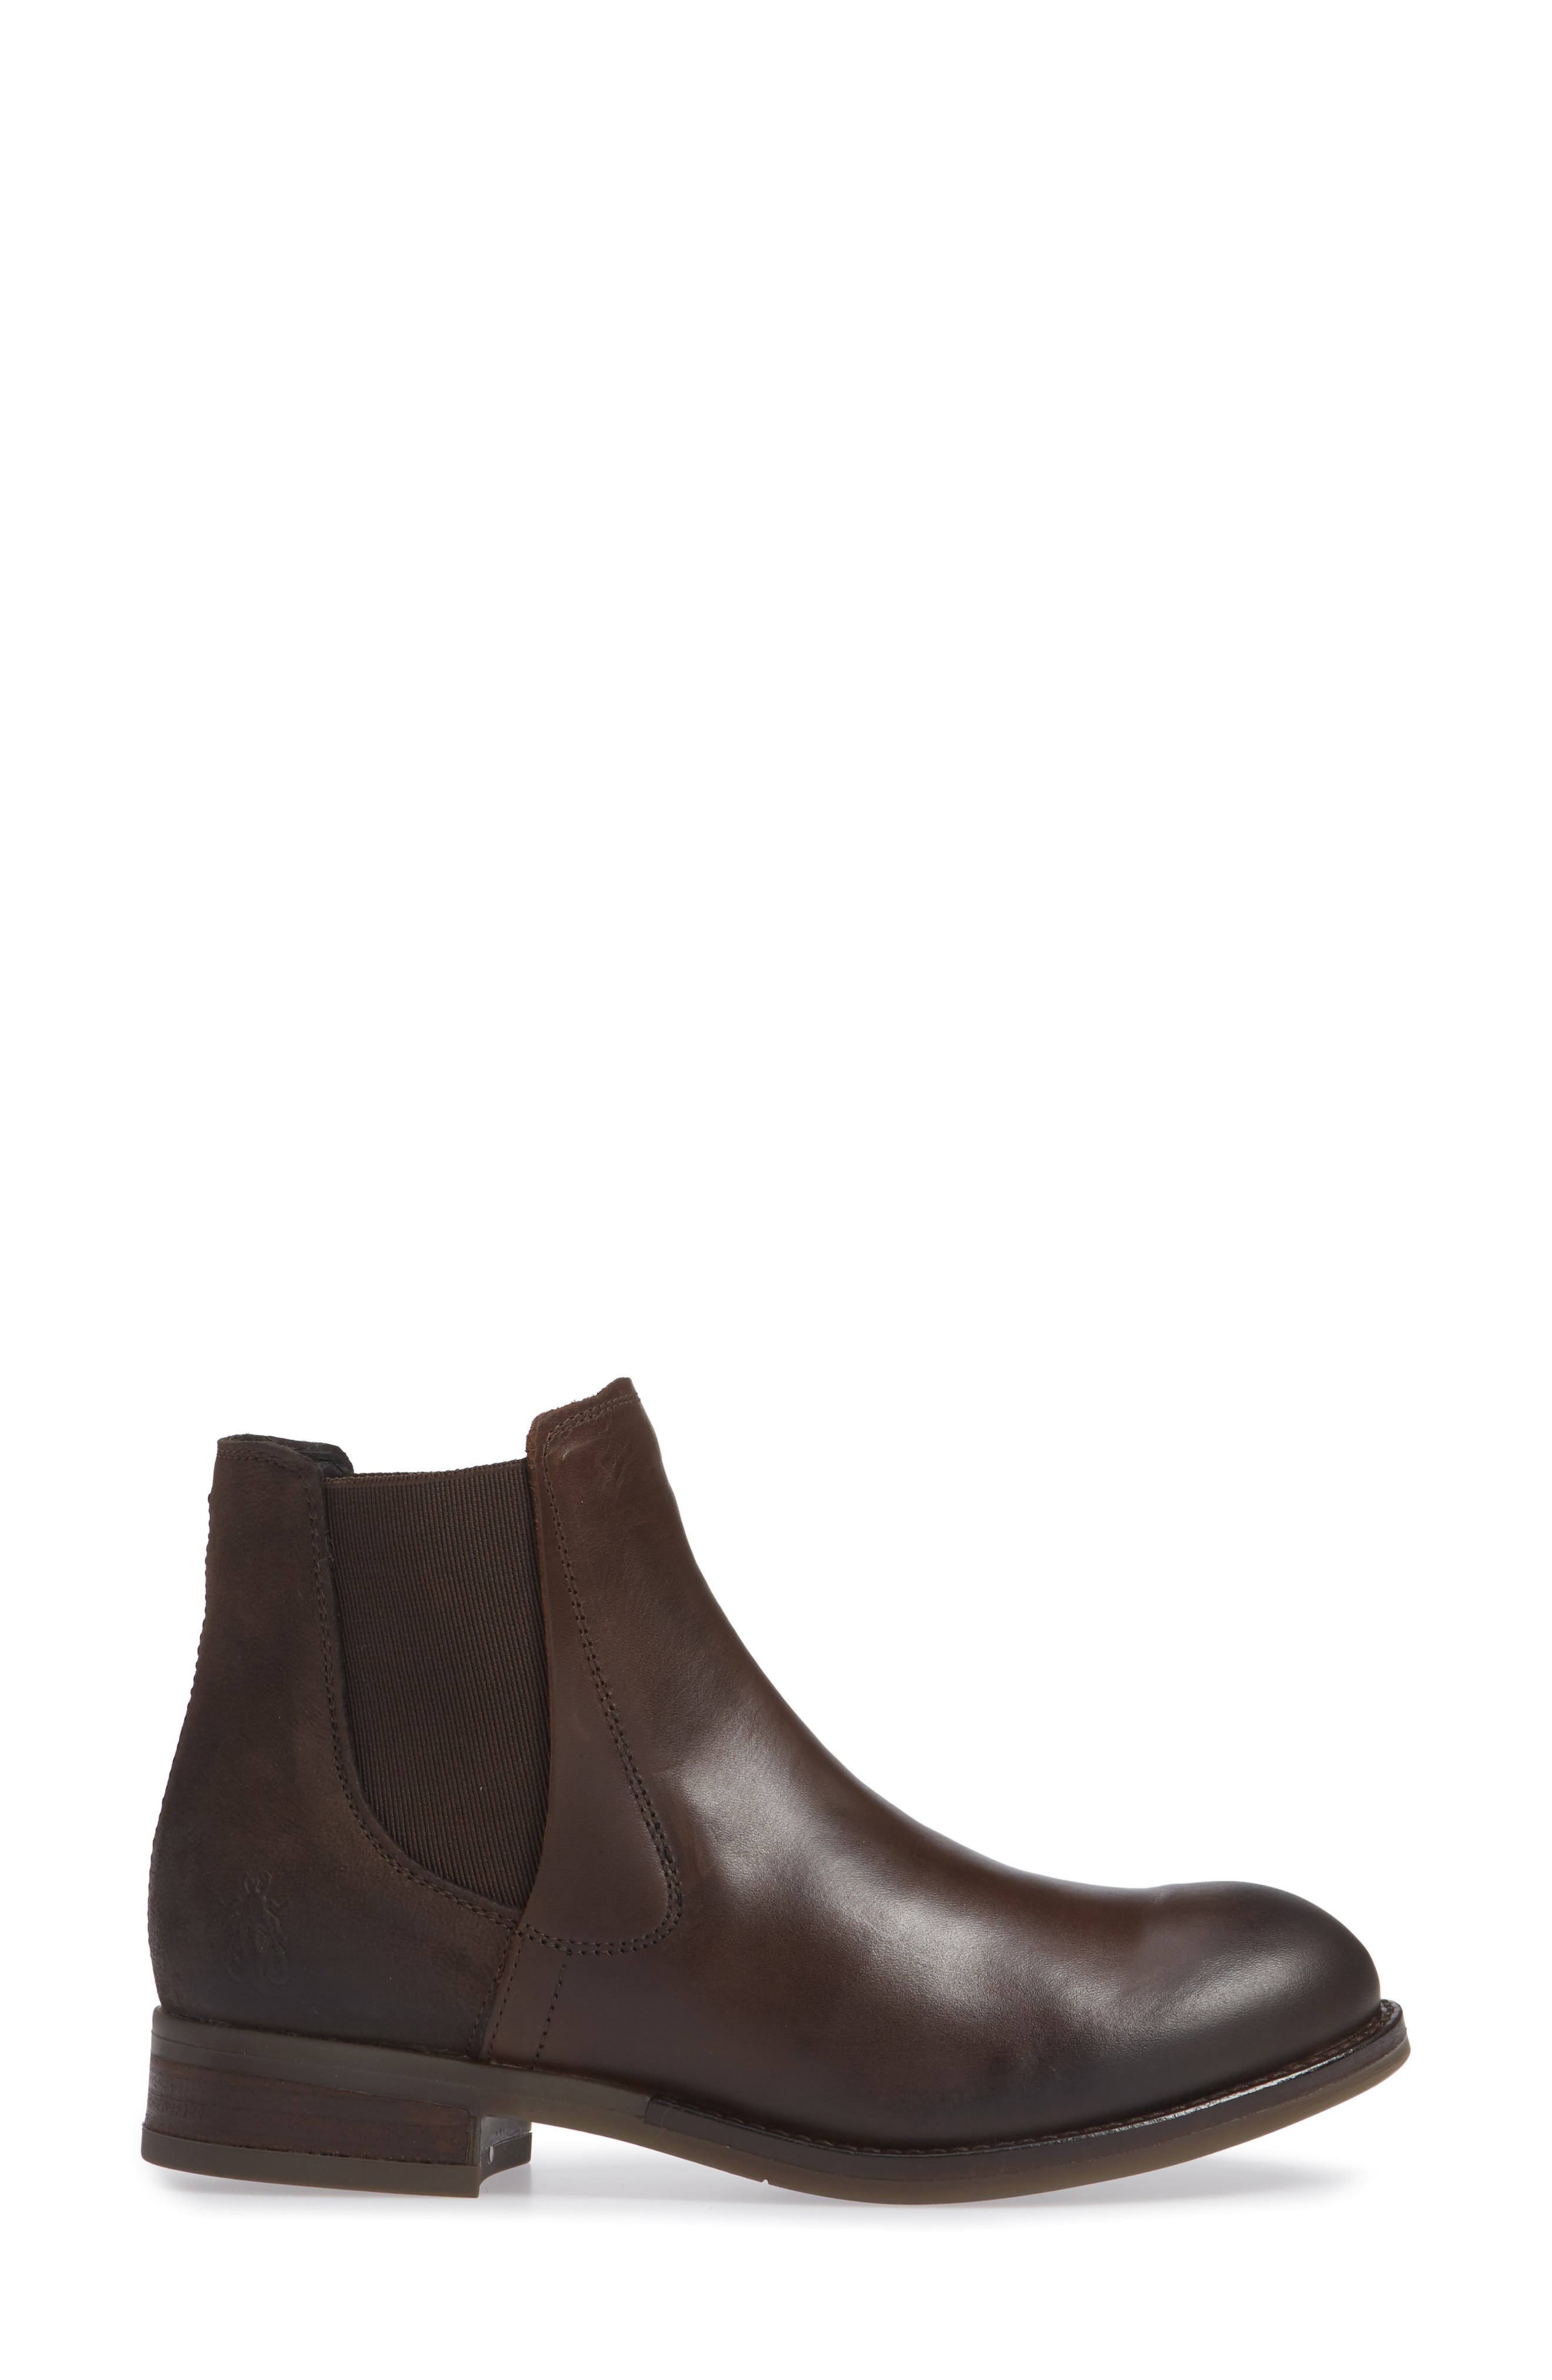 Alls Chelsea Bootie,                             Alternate thumbnail 3, color,                             DARK BROWN LEATHER